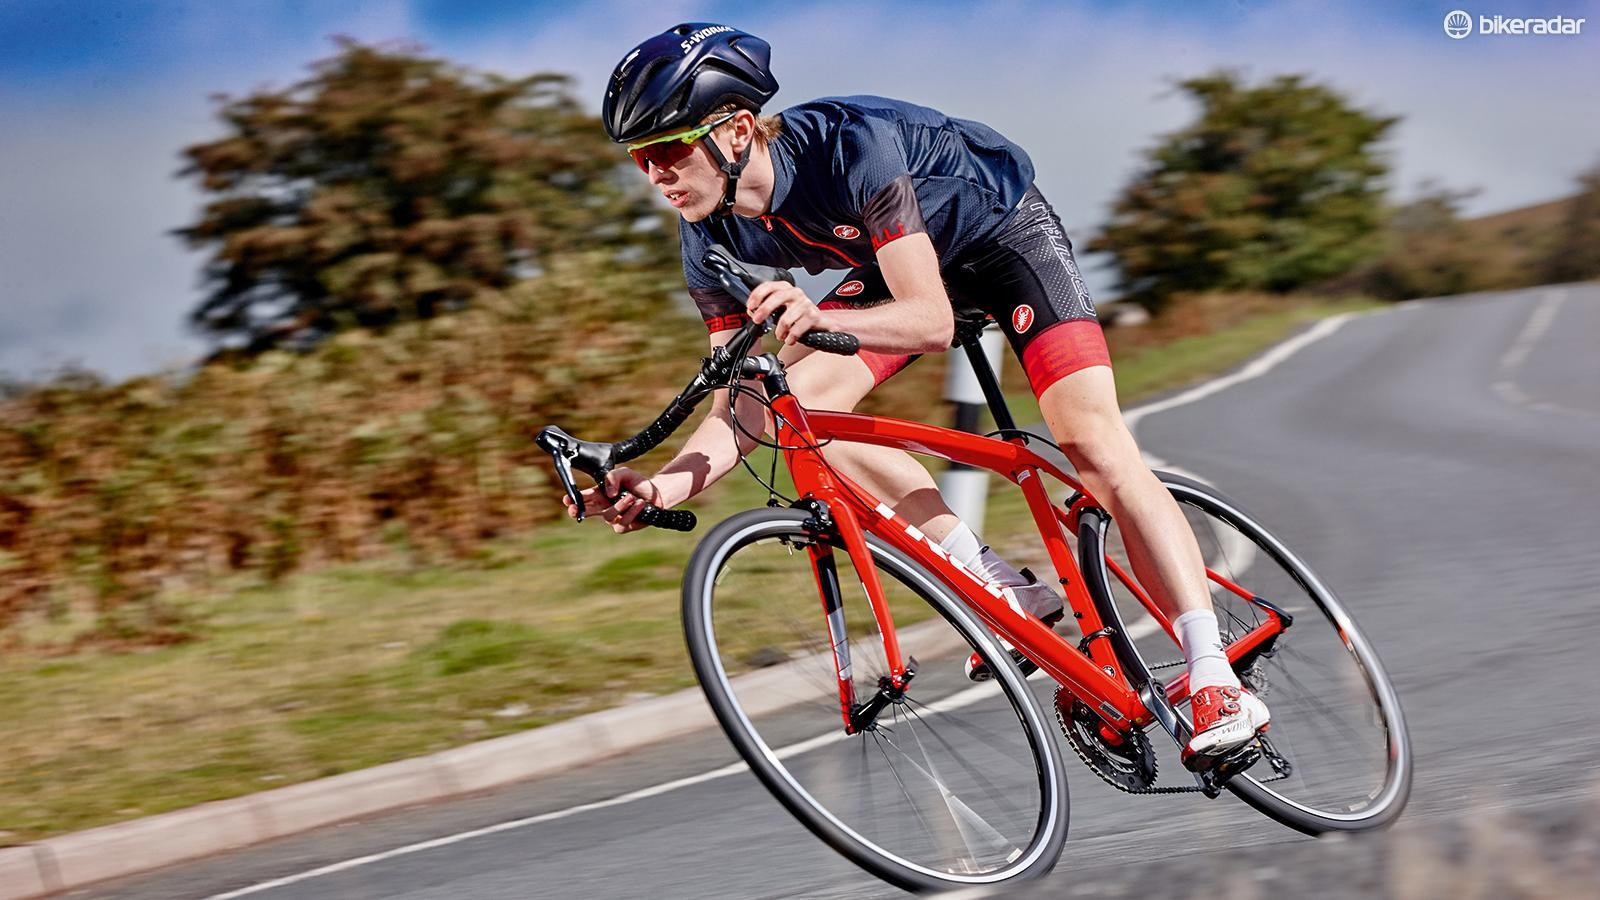 Tyre pressure can affect your speed on the bike